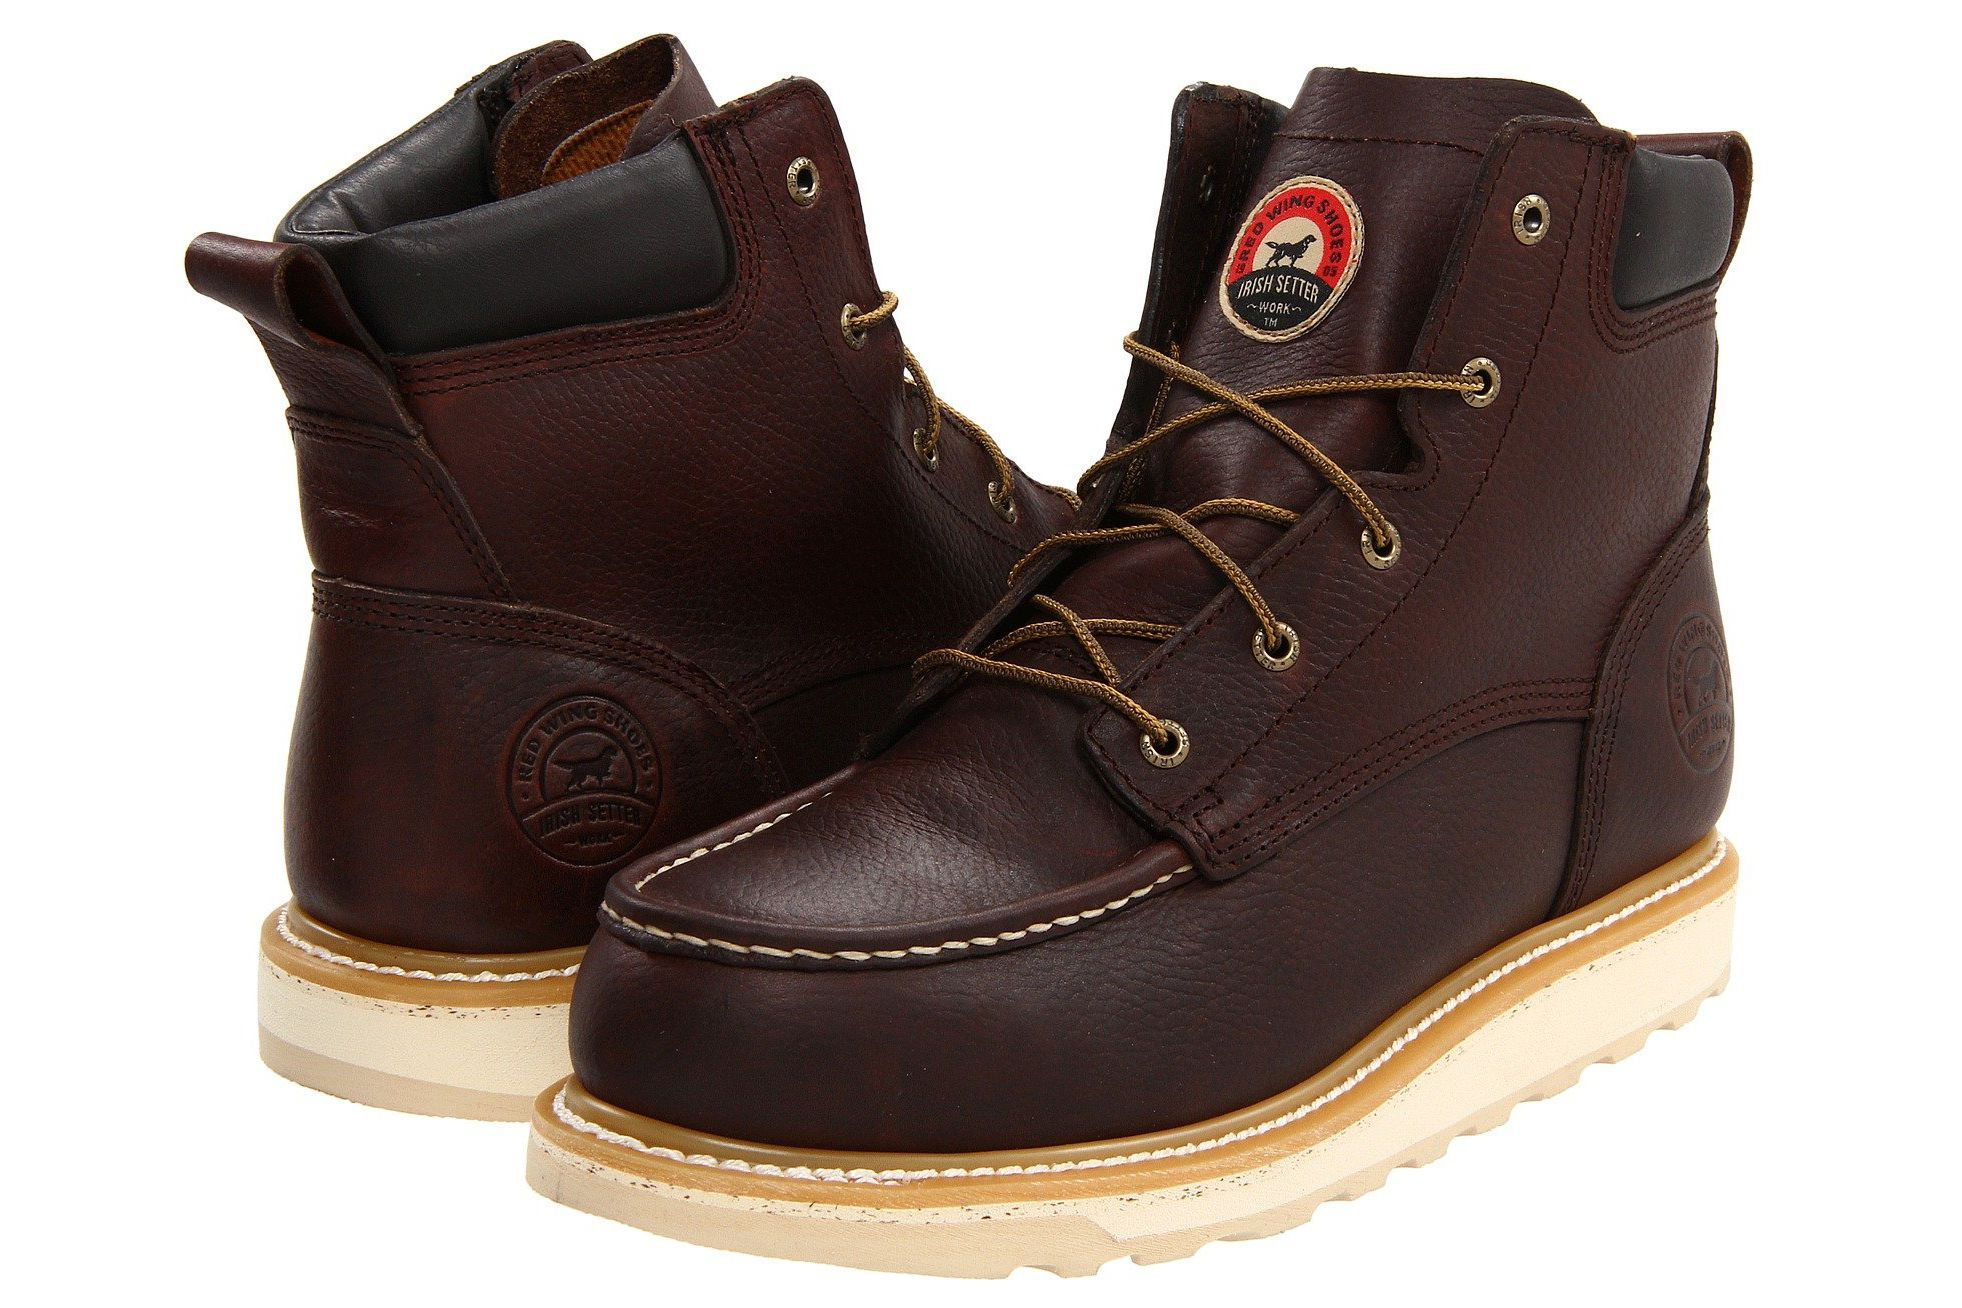 d833684eb29 UGG Vestmar Leather LaceUp Boot Products in 2019 Boots